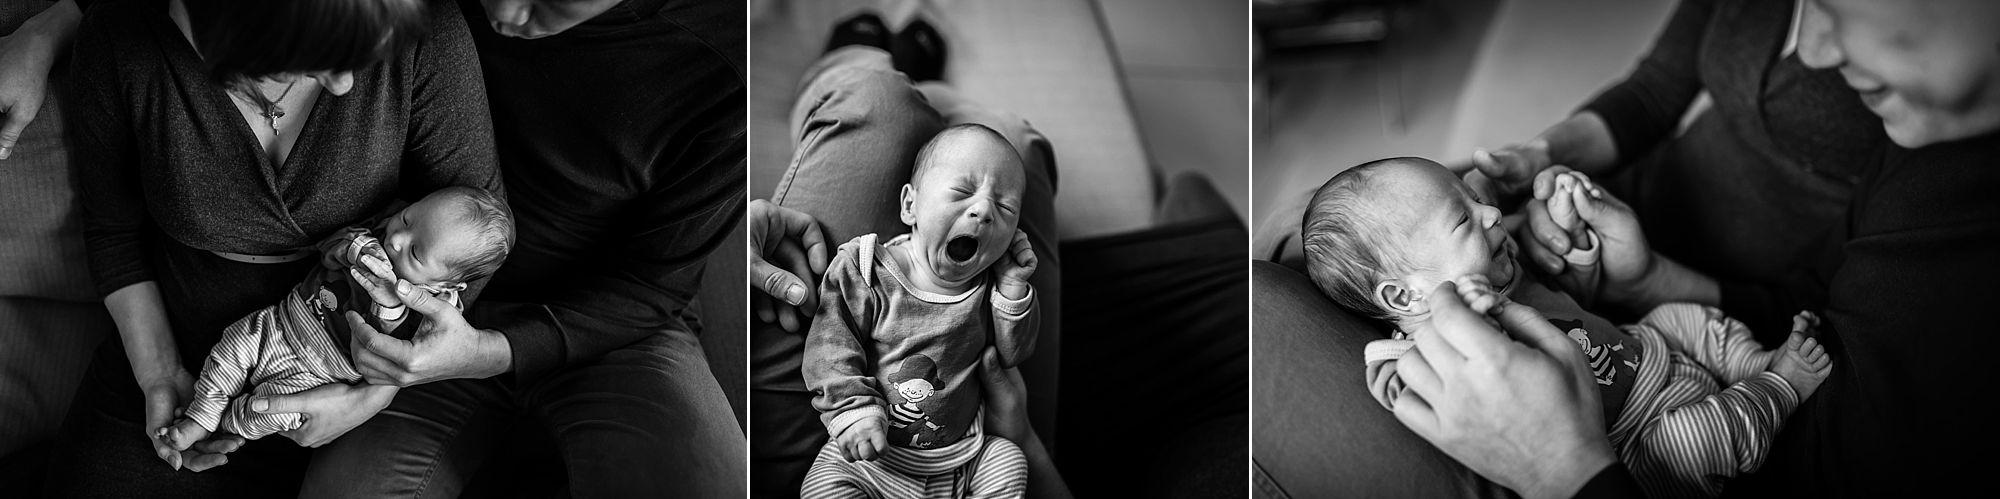 Taiwan_In_Home_Newborn_Photo_Session_Hunnicutt_Photography_0002